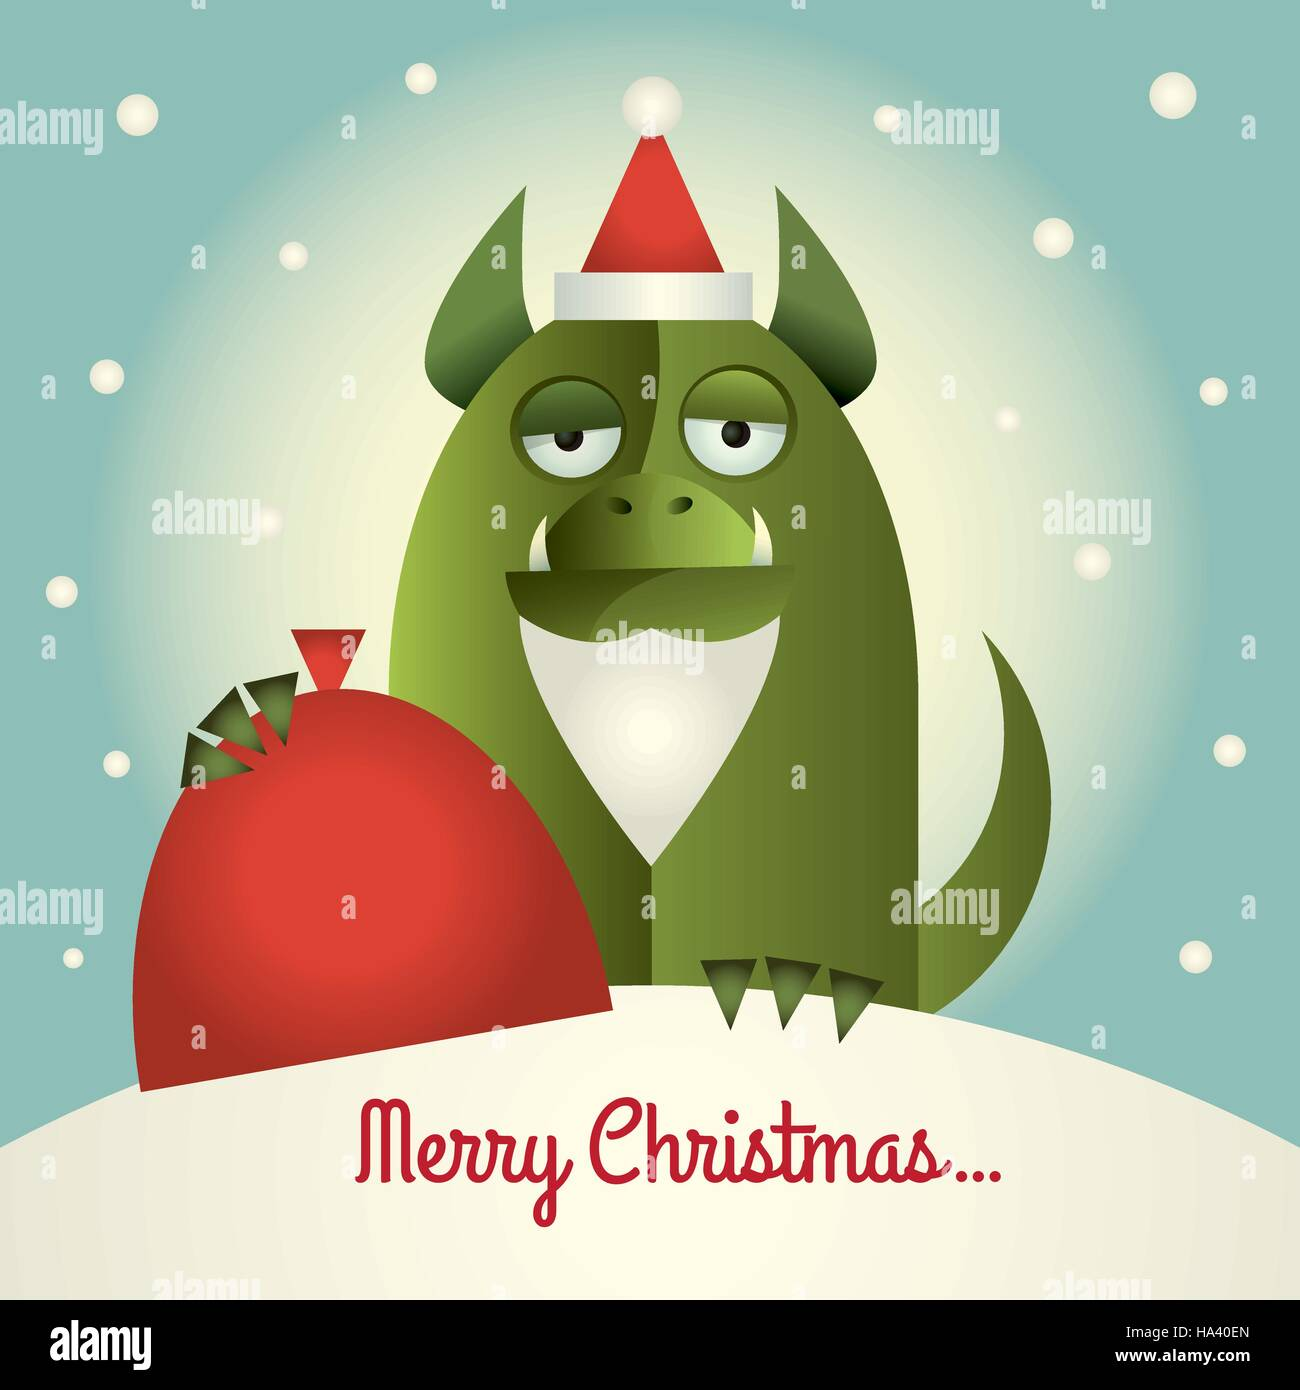 Vector illustration of a green monster with Santa beard and hat holding a red sack. Text:  Merry Christmas. Retro Stock Vector